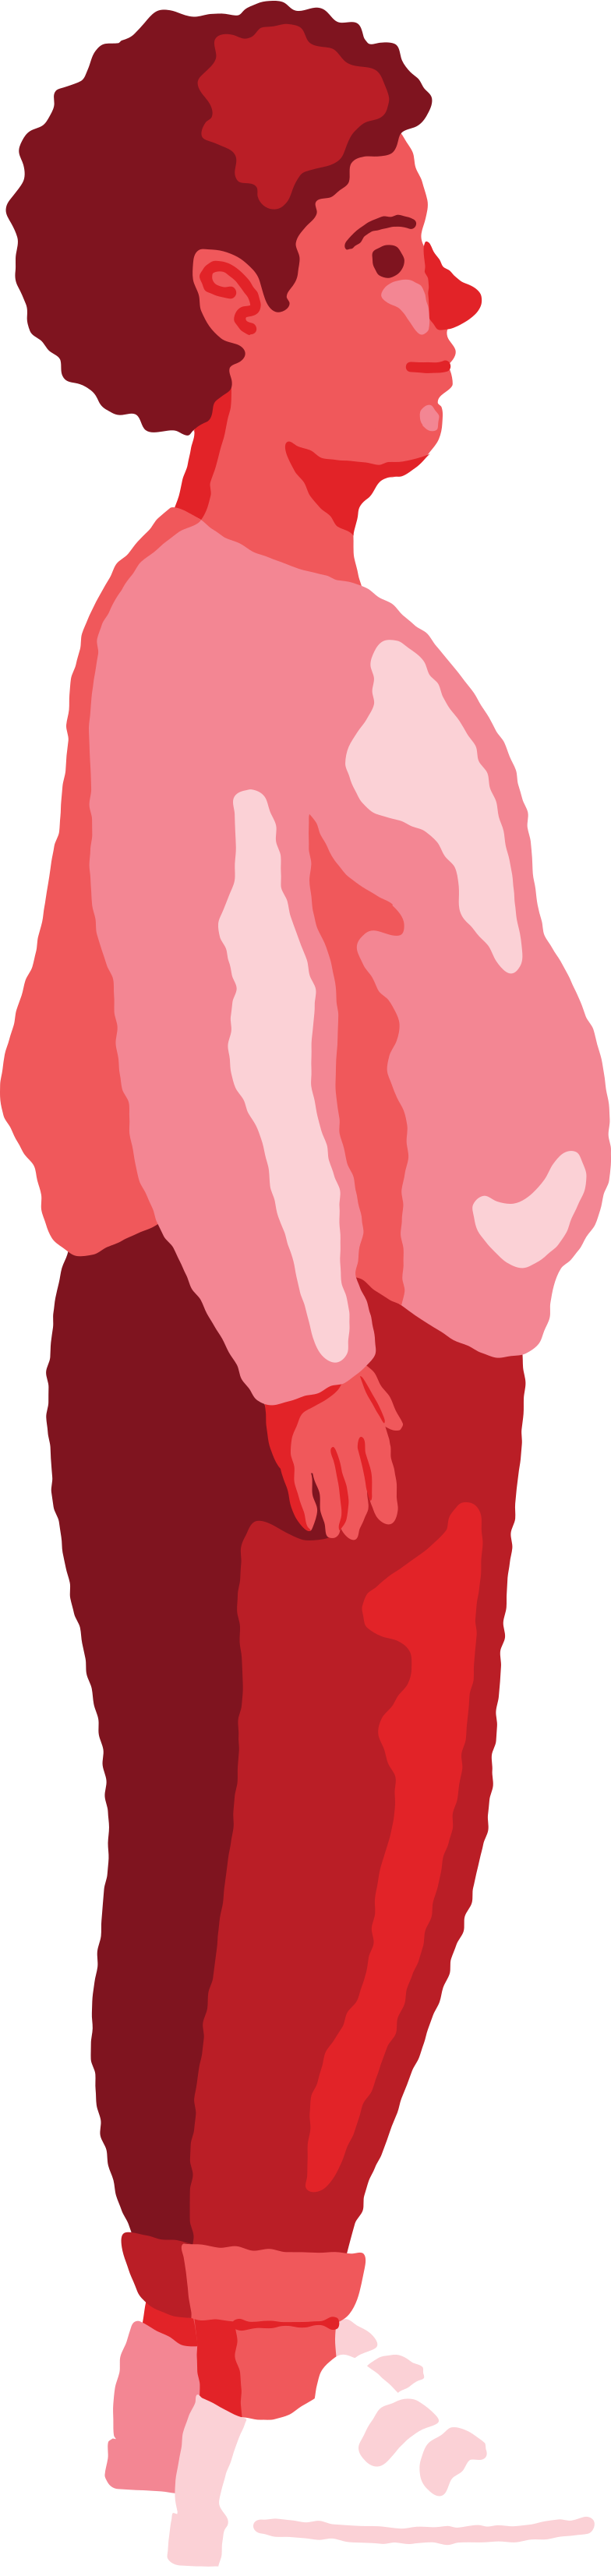 style chubby boy standing profile Vector images in PNG and SVG | Icons8 Illustrations